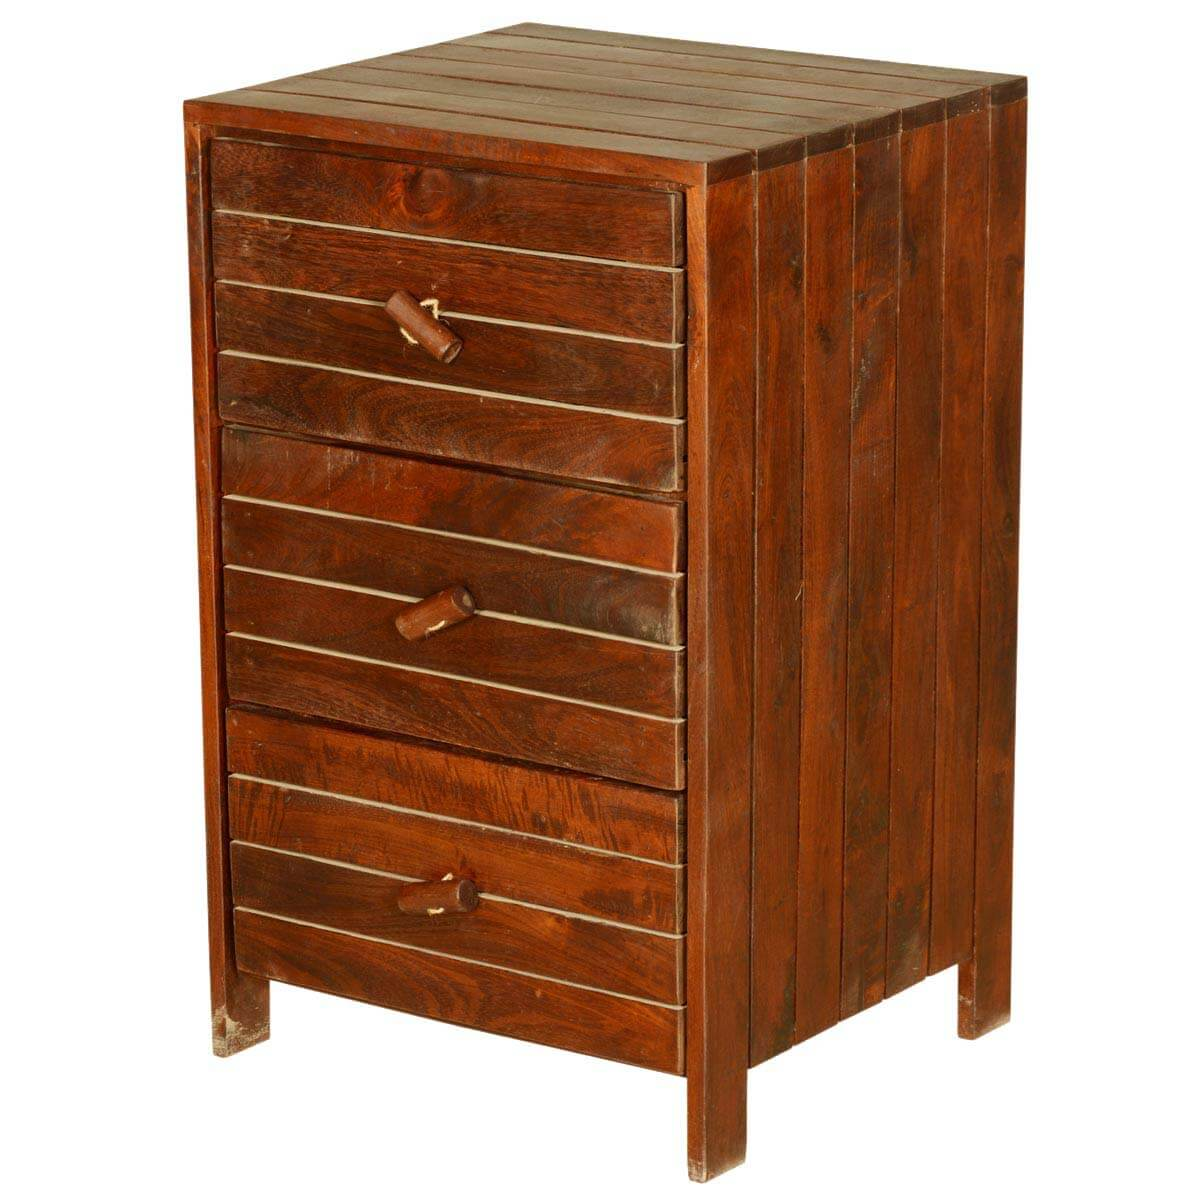 Parallel Lines Solid Teak Wood 3 Drawer End Table